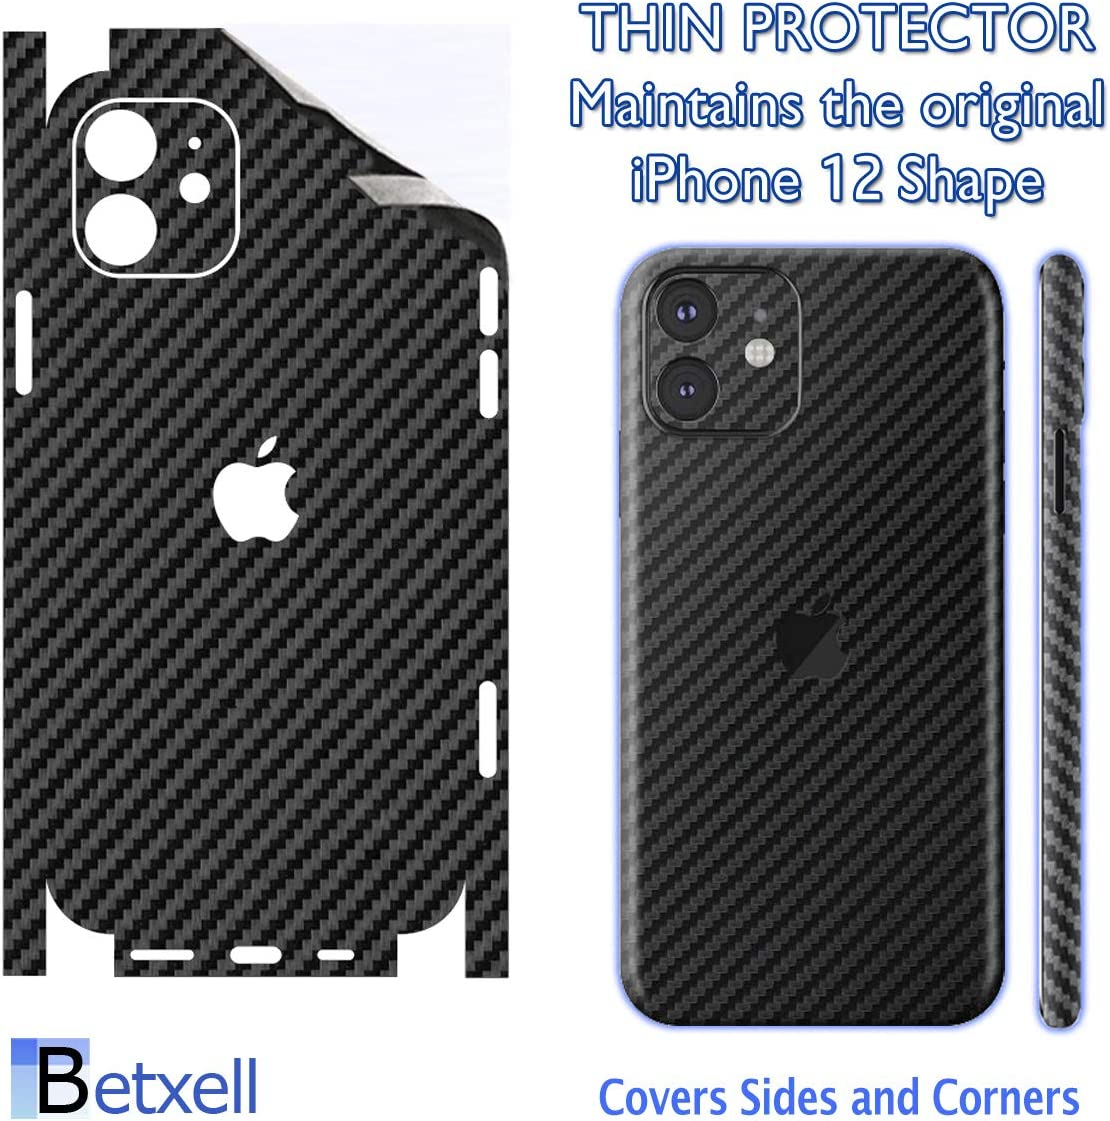 for iPhone 12 Carbon Fiber 3M Film for iPhone 12 Skin Wrap Protective Around Borders and Back Thin 3D Elegant Skin